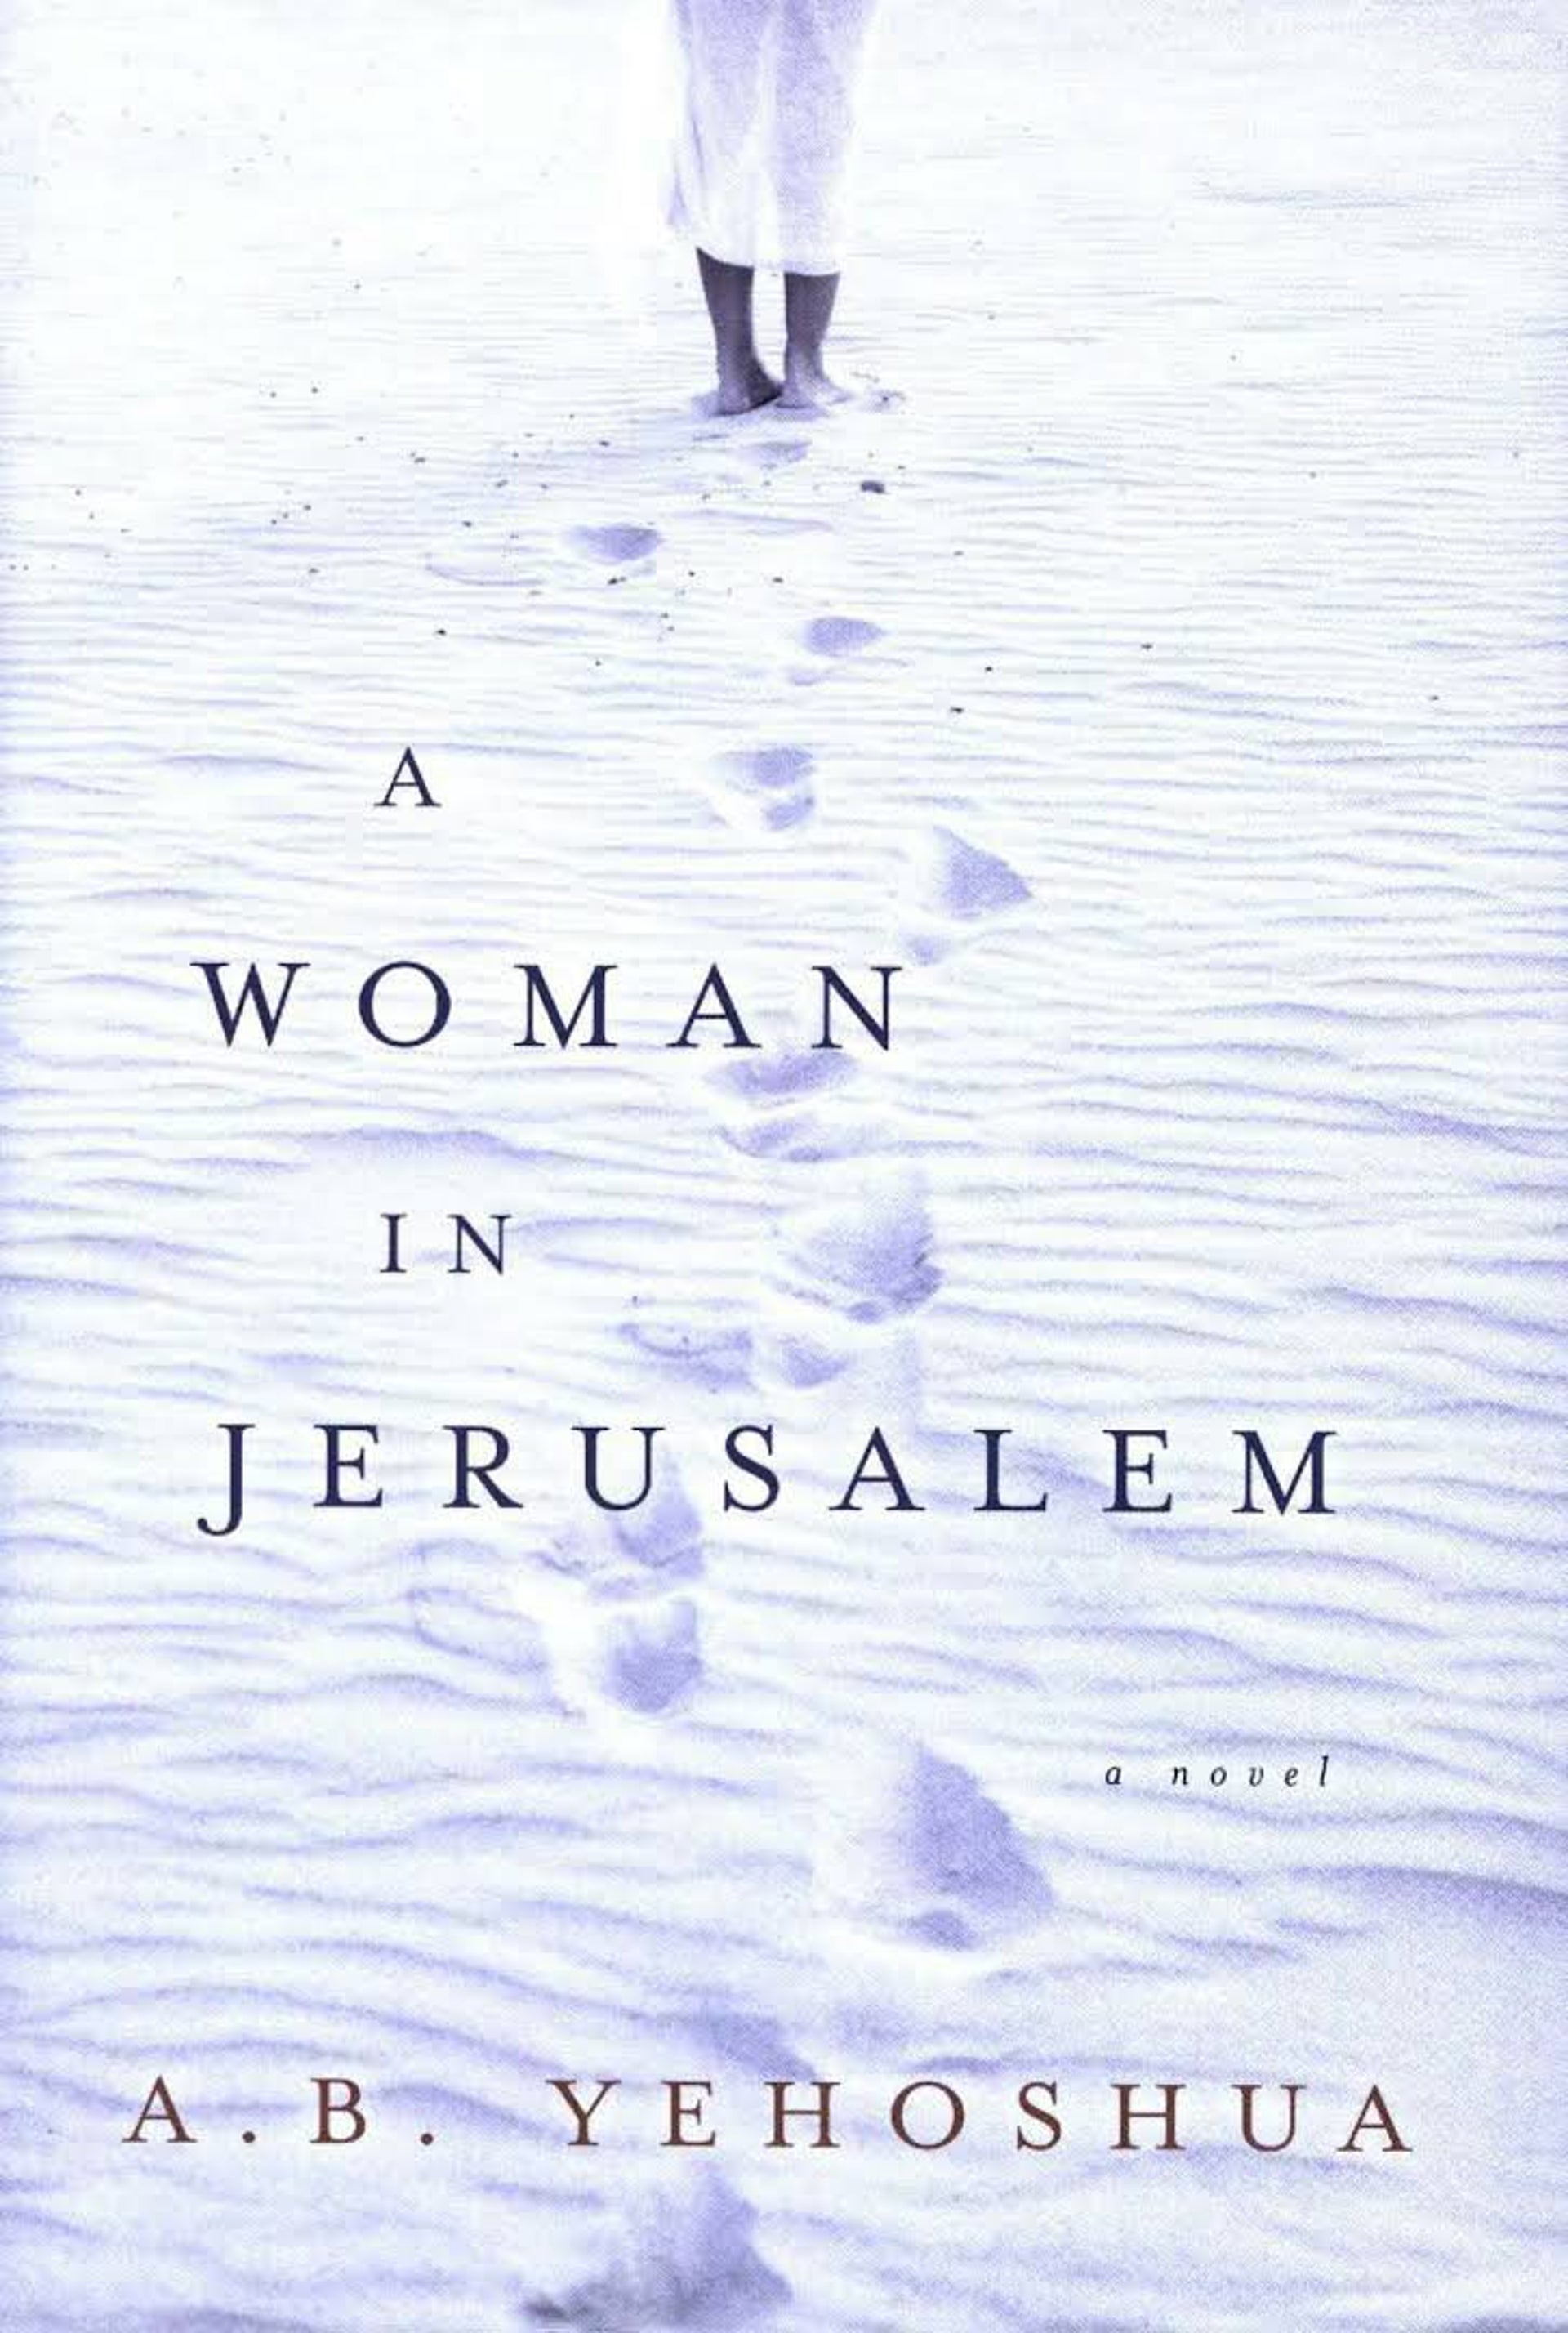 a book by A.B. Yehoshua